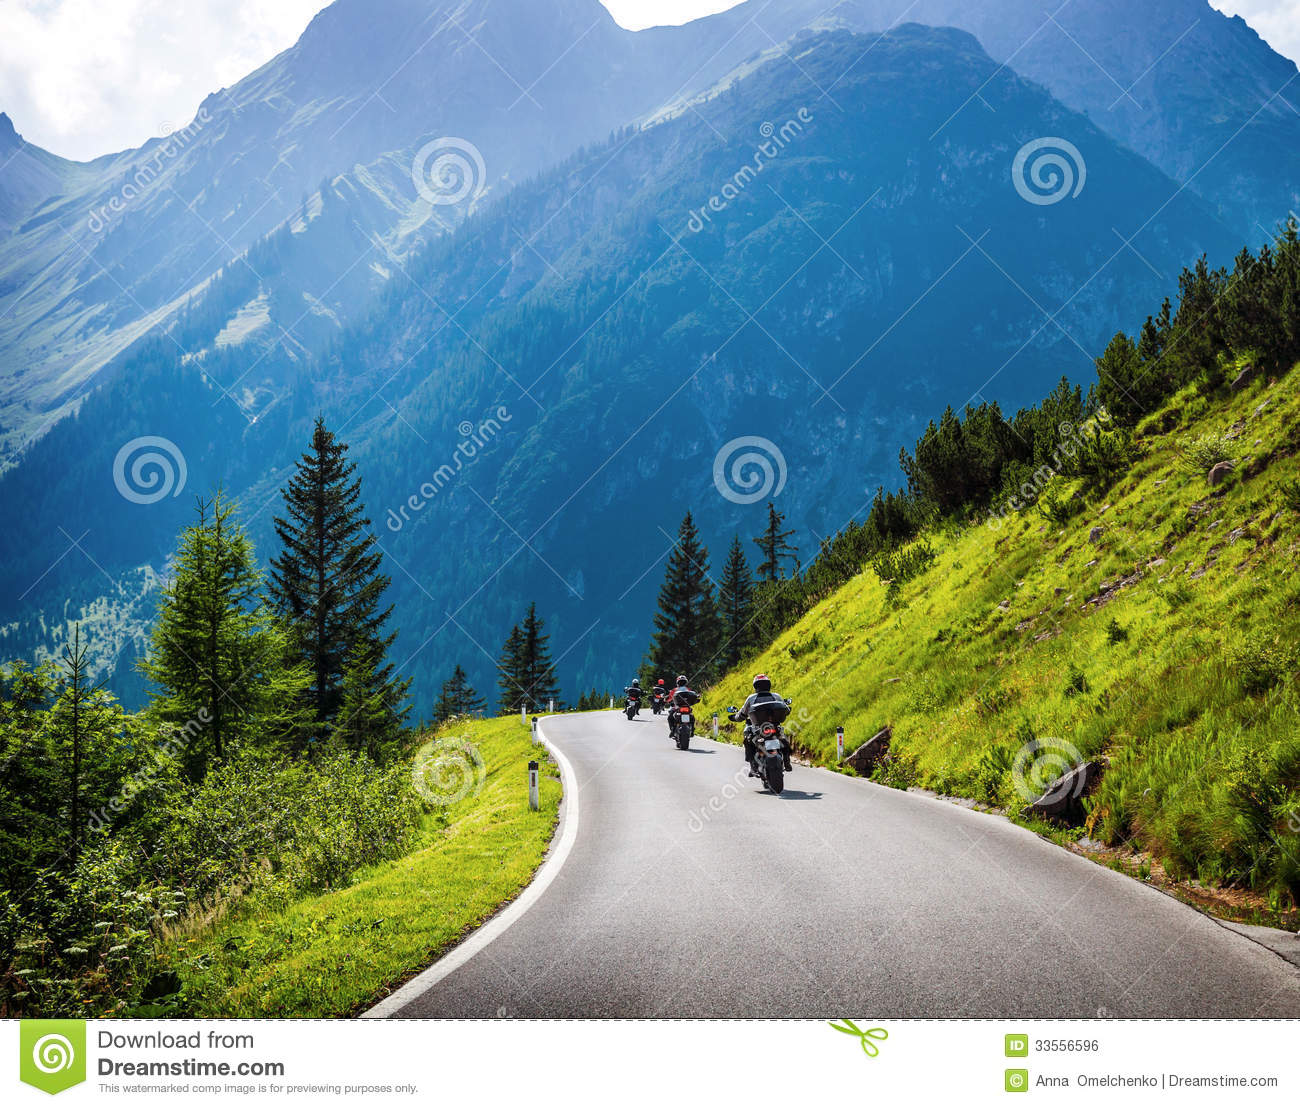 moto-racers-mountainous-road-riding-driv